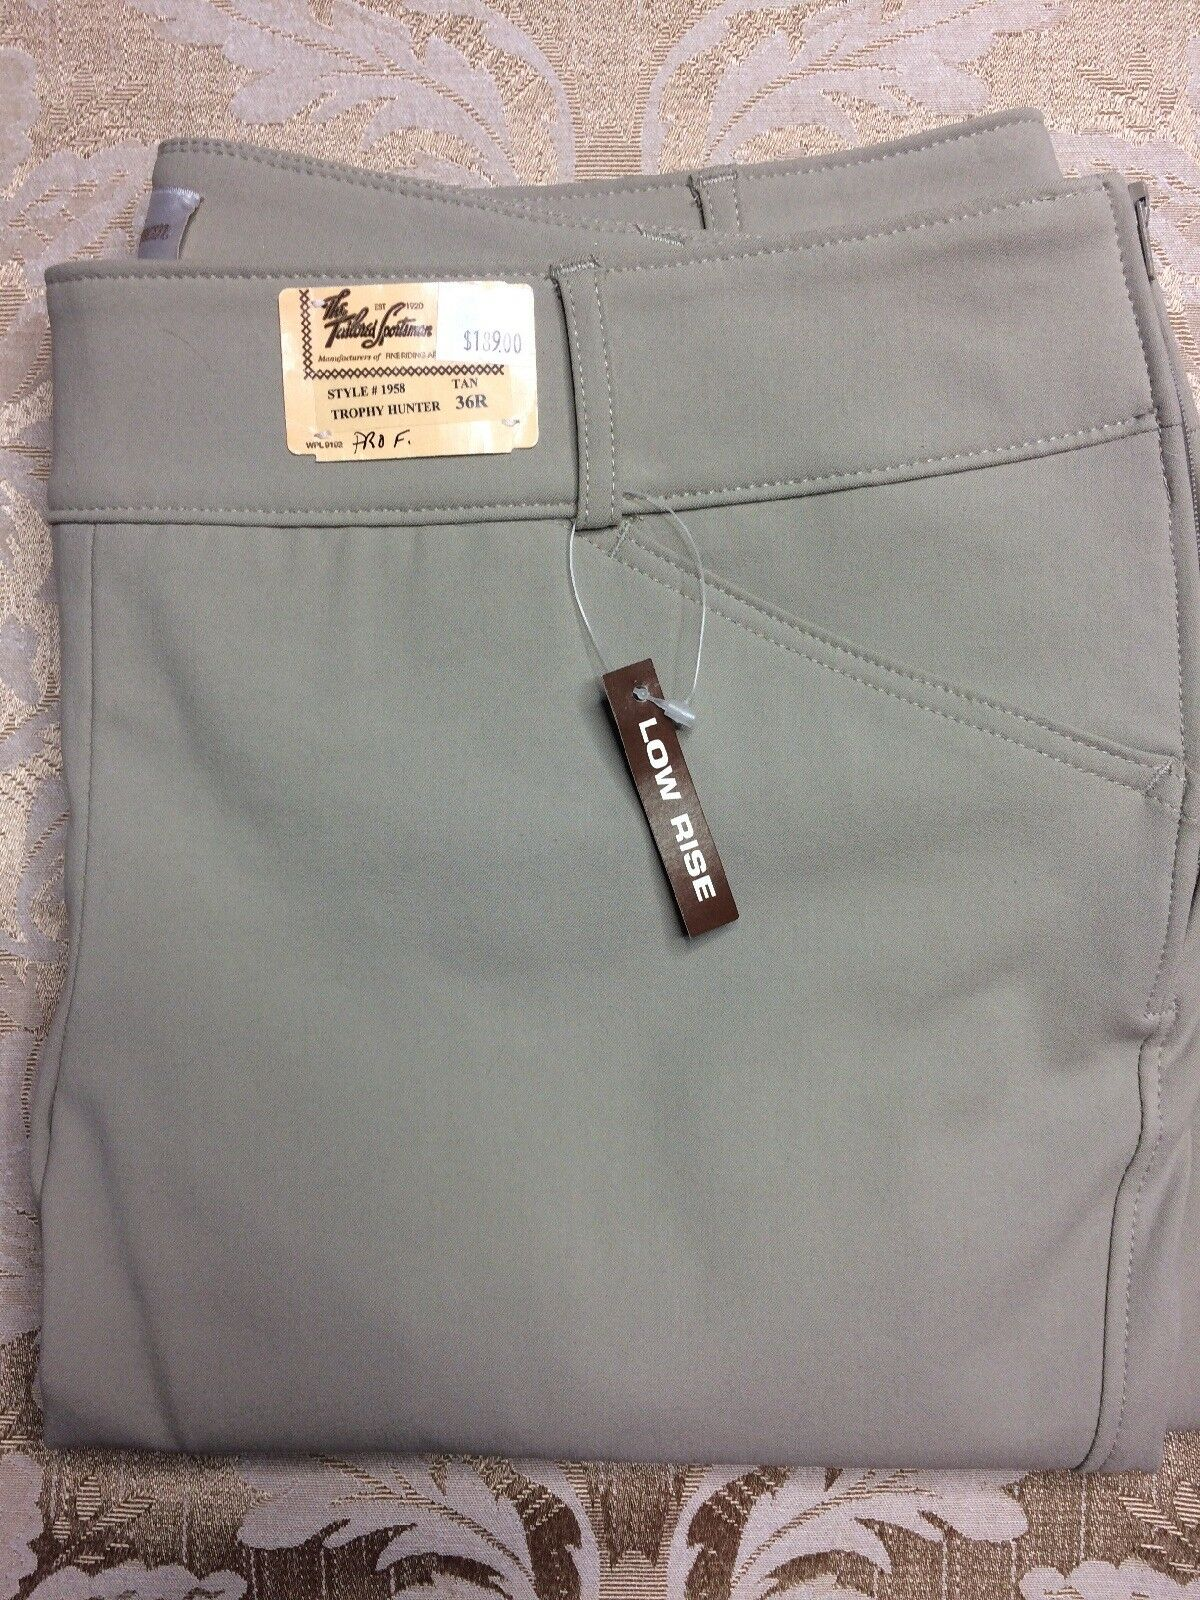 New Tailored Sportsman Trophy Hunter  Professional 36R Low Rise Tan